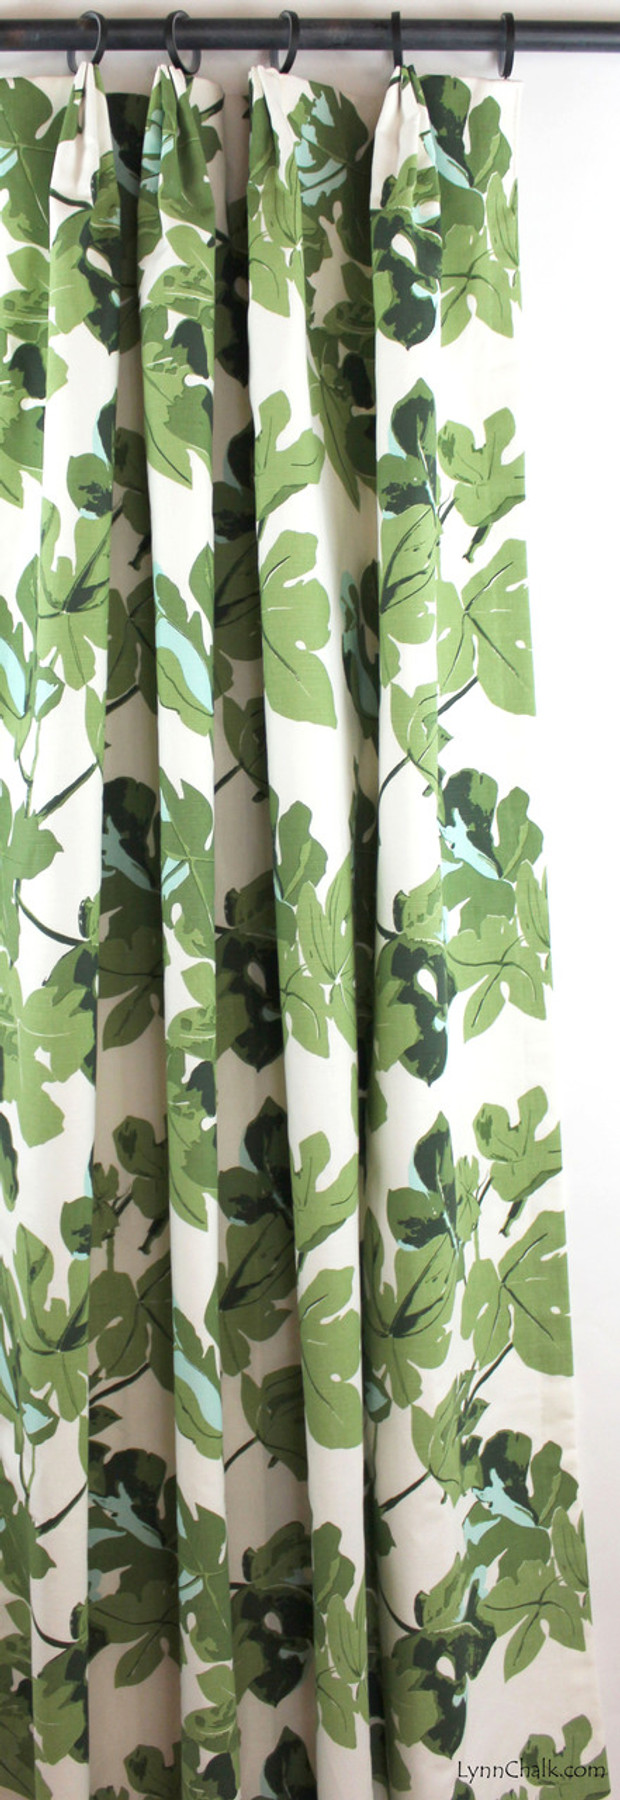 Fan Pleated Drapes in Fig Leaf on White